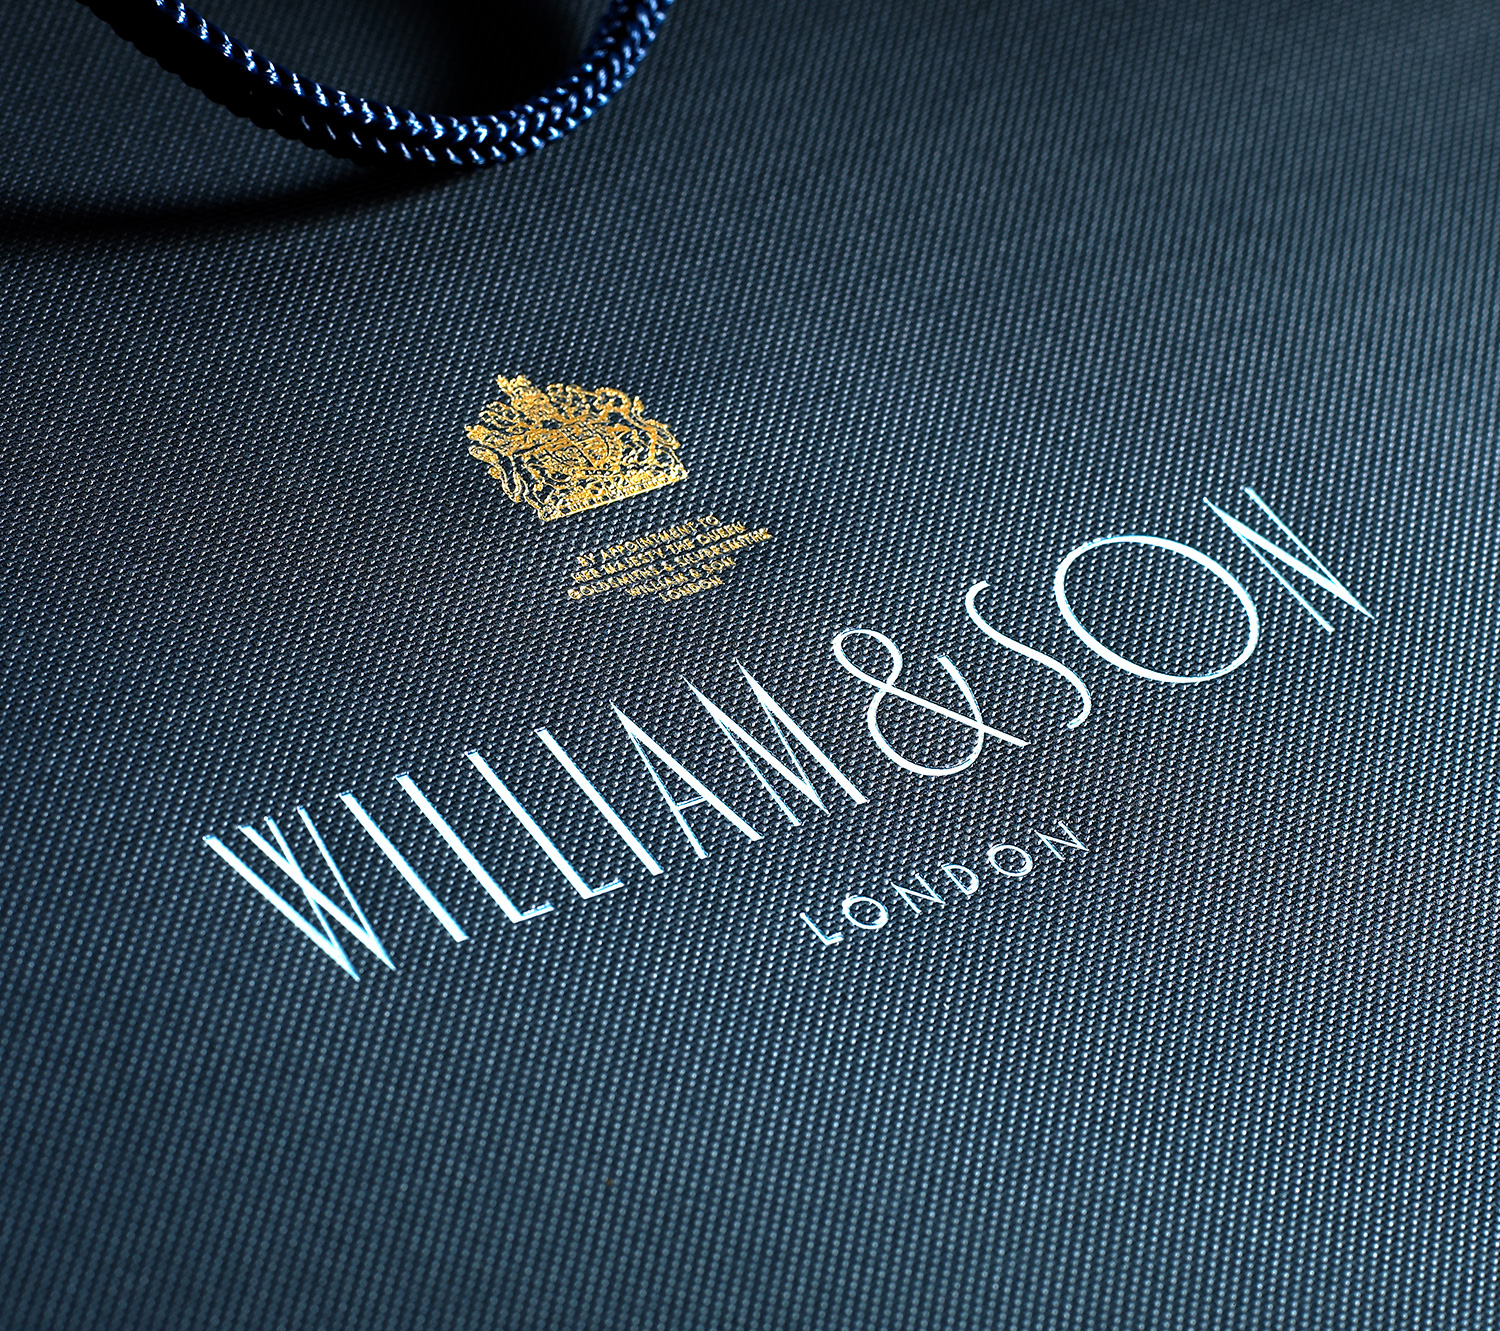 Progress Packaging WilliamSons Luxury Fashion CarrierBag Papers Foiling Texture Royal Warrant